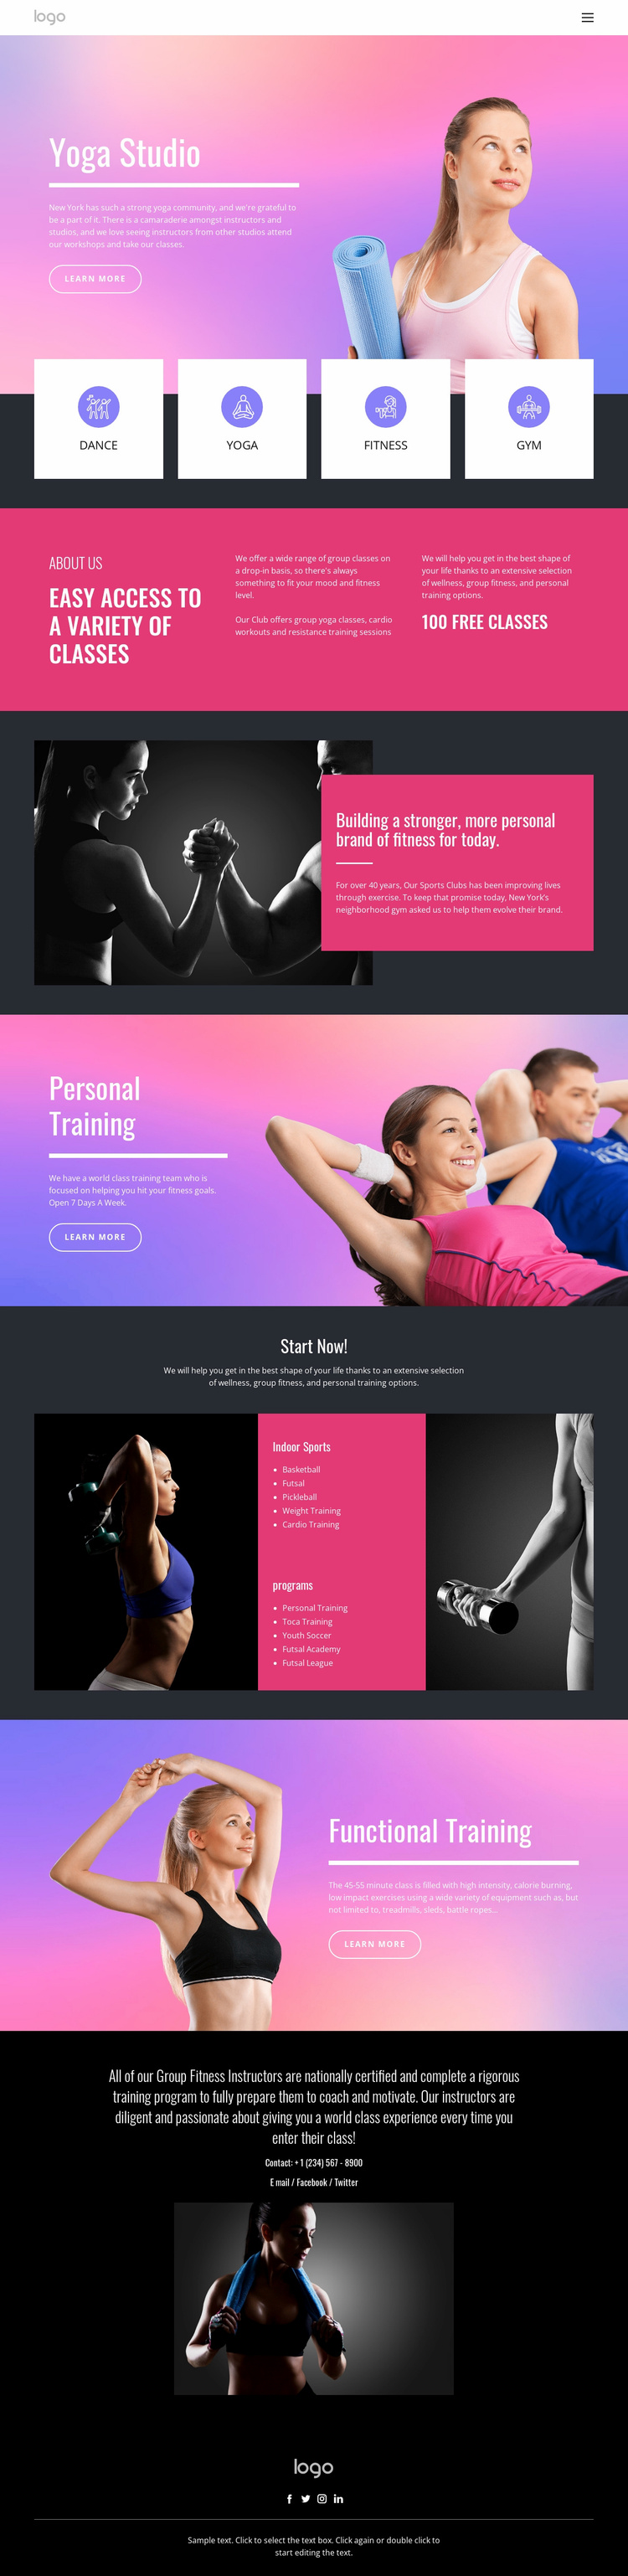 Wellness practice for self-inquiry Landing Page